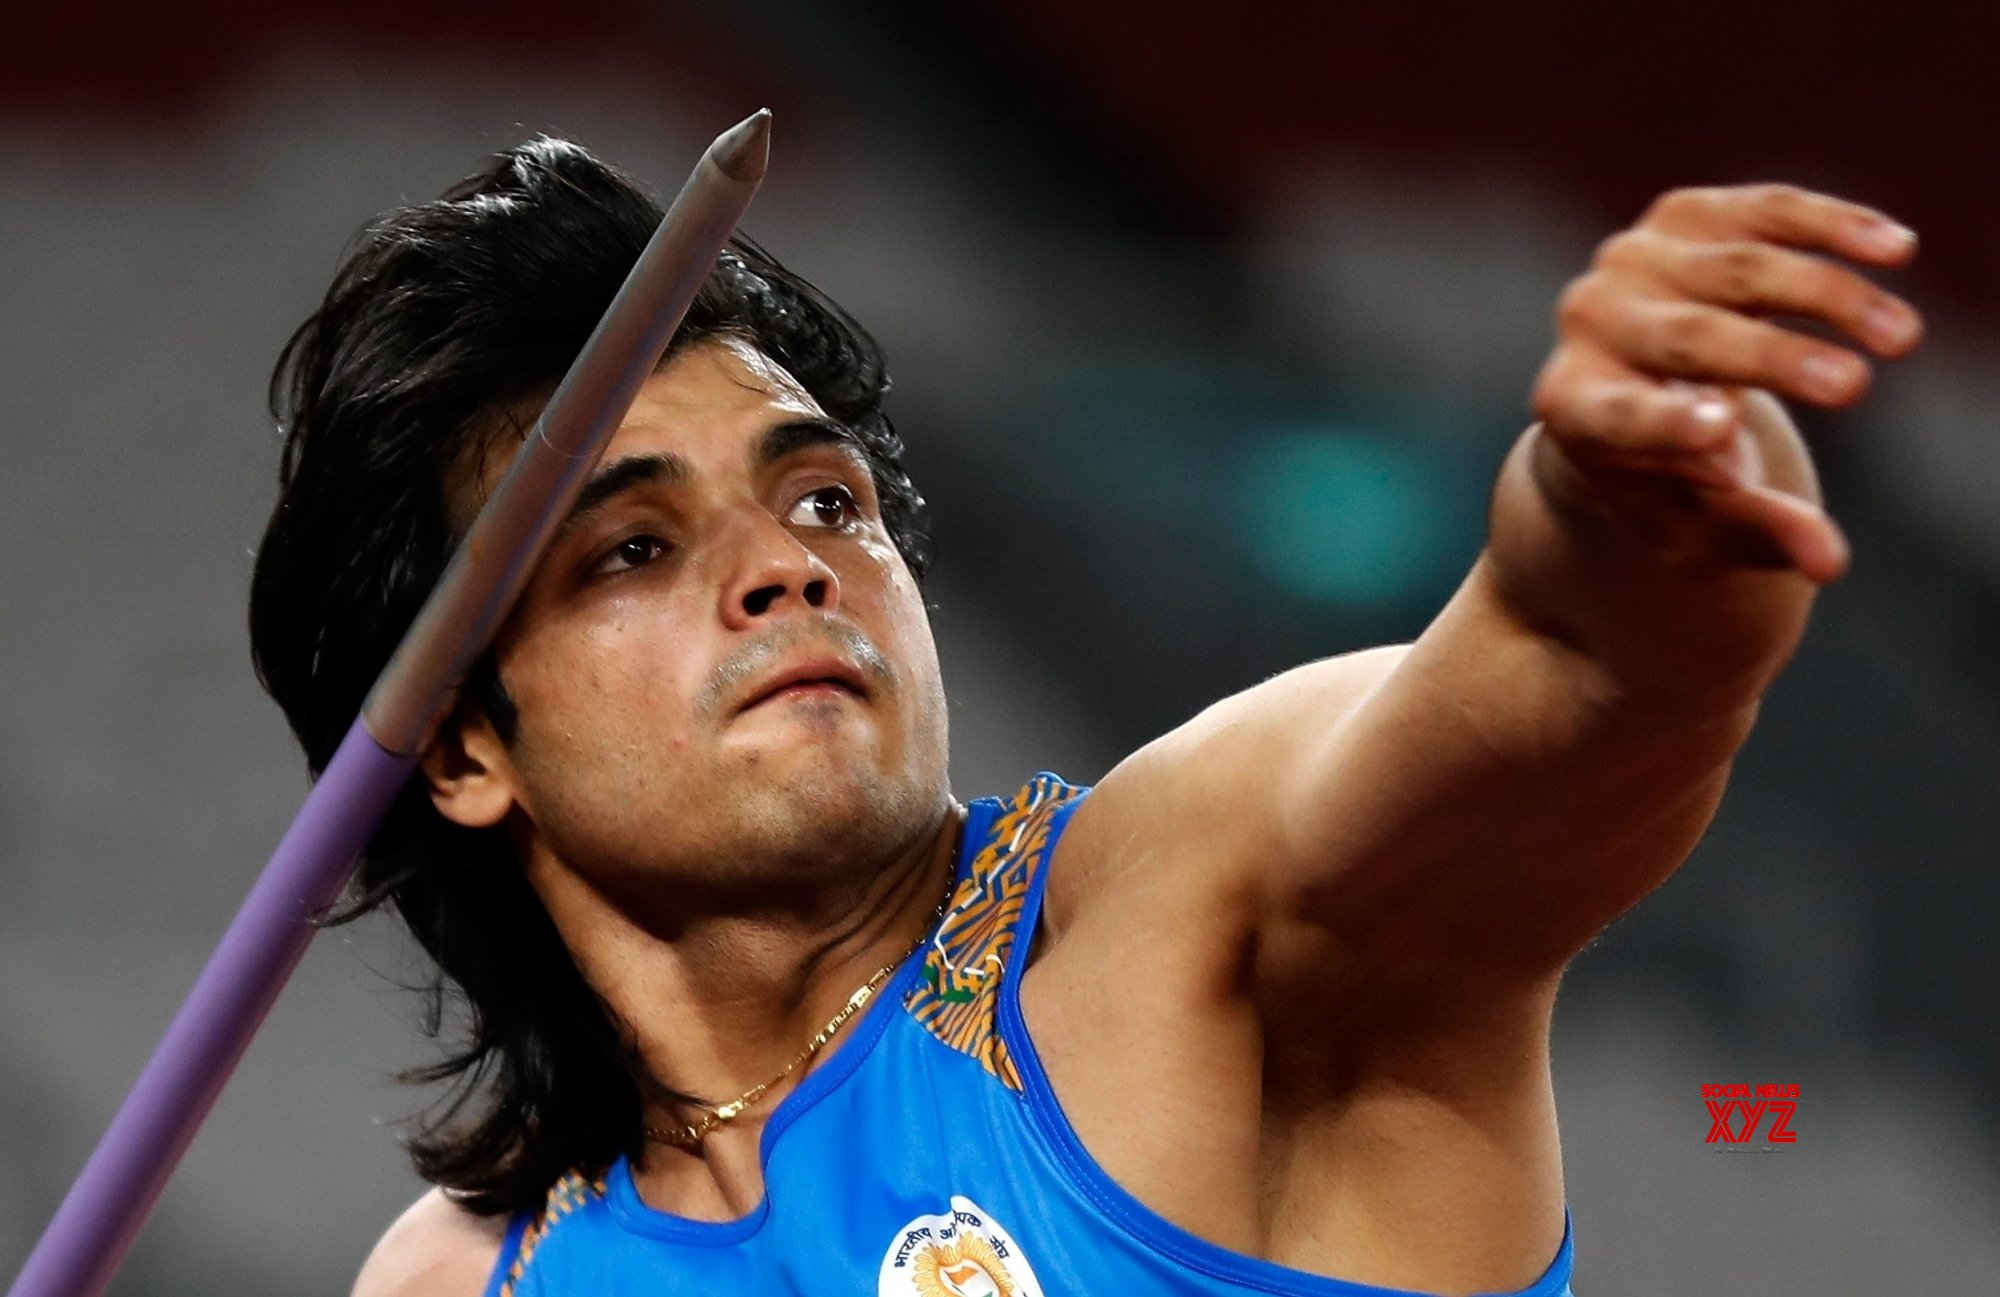 Neeraj Chopra not to participate in National Open Athletics